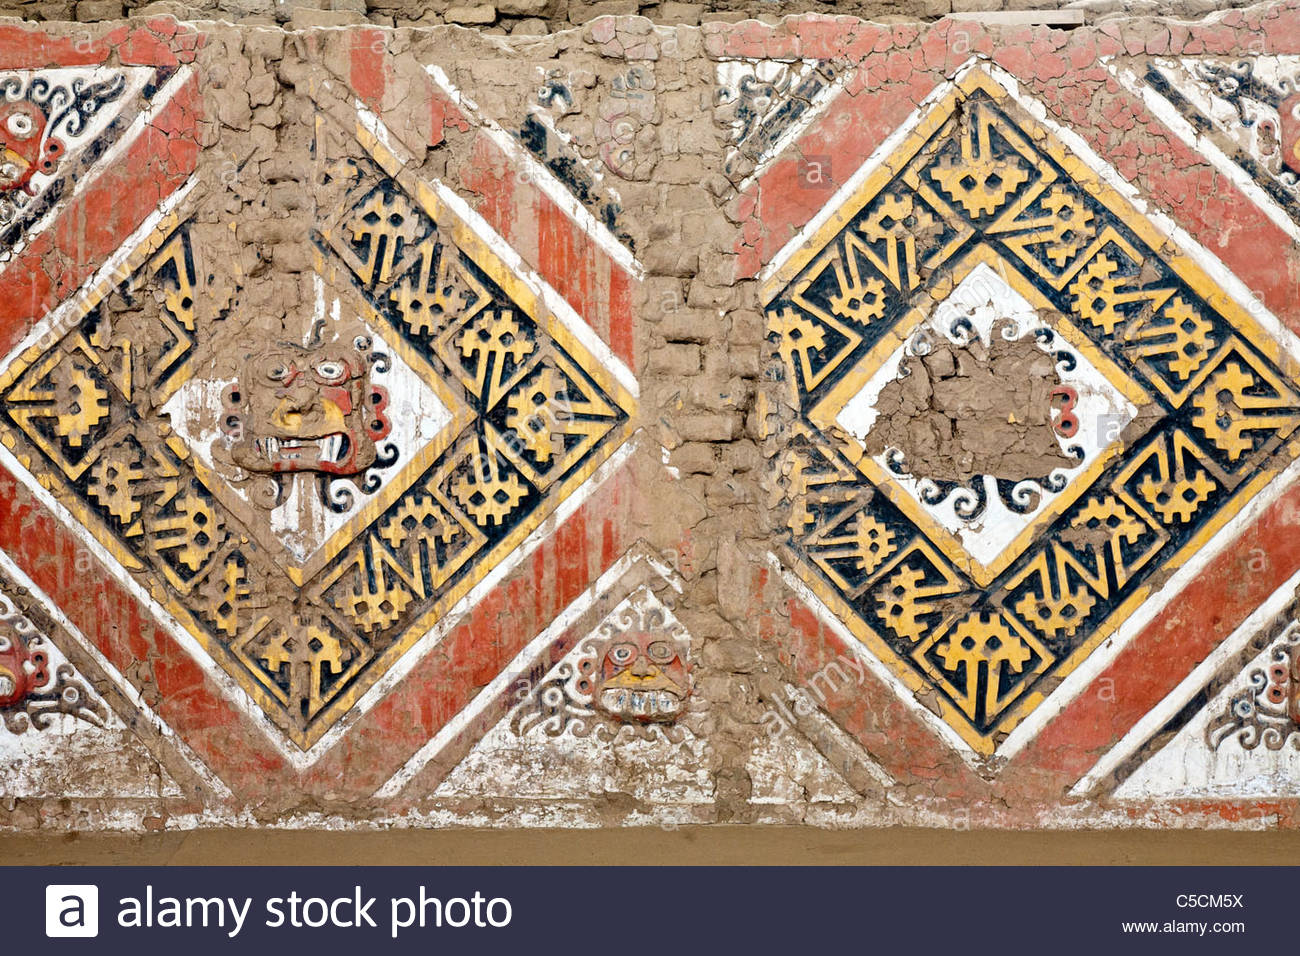 Brightly painted high relief friezes at the Moche temple site Huaca de la Luna, Trujillo, La Libertad, Peru - Stock Image